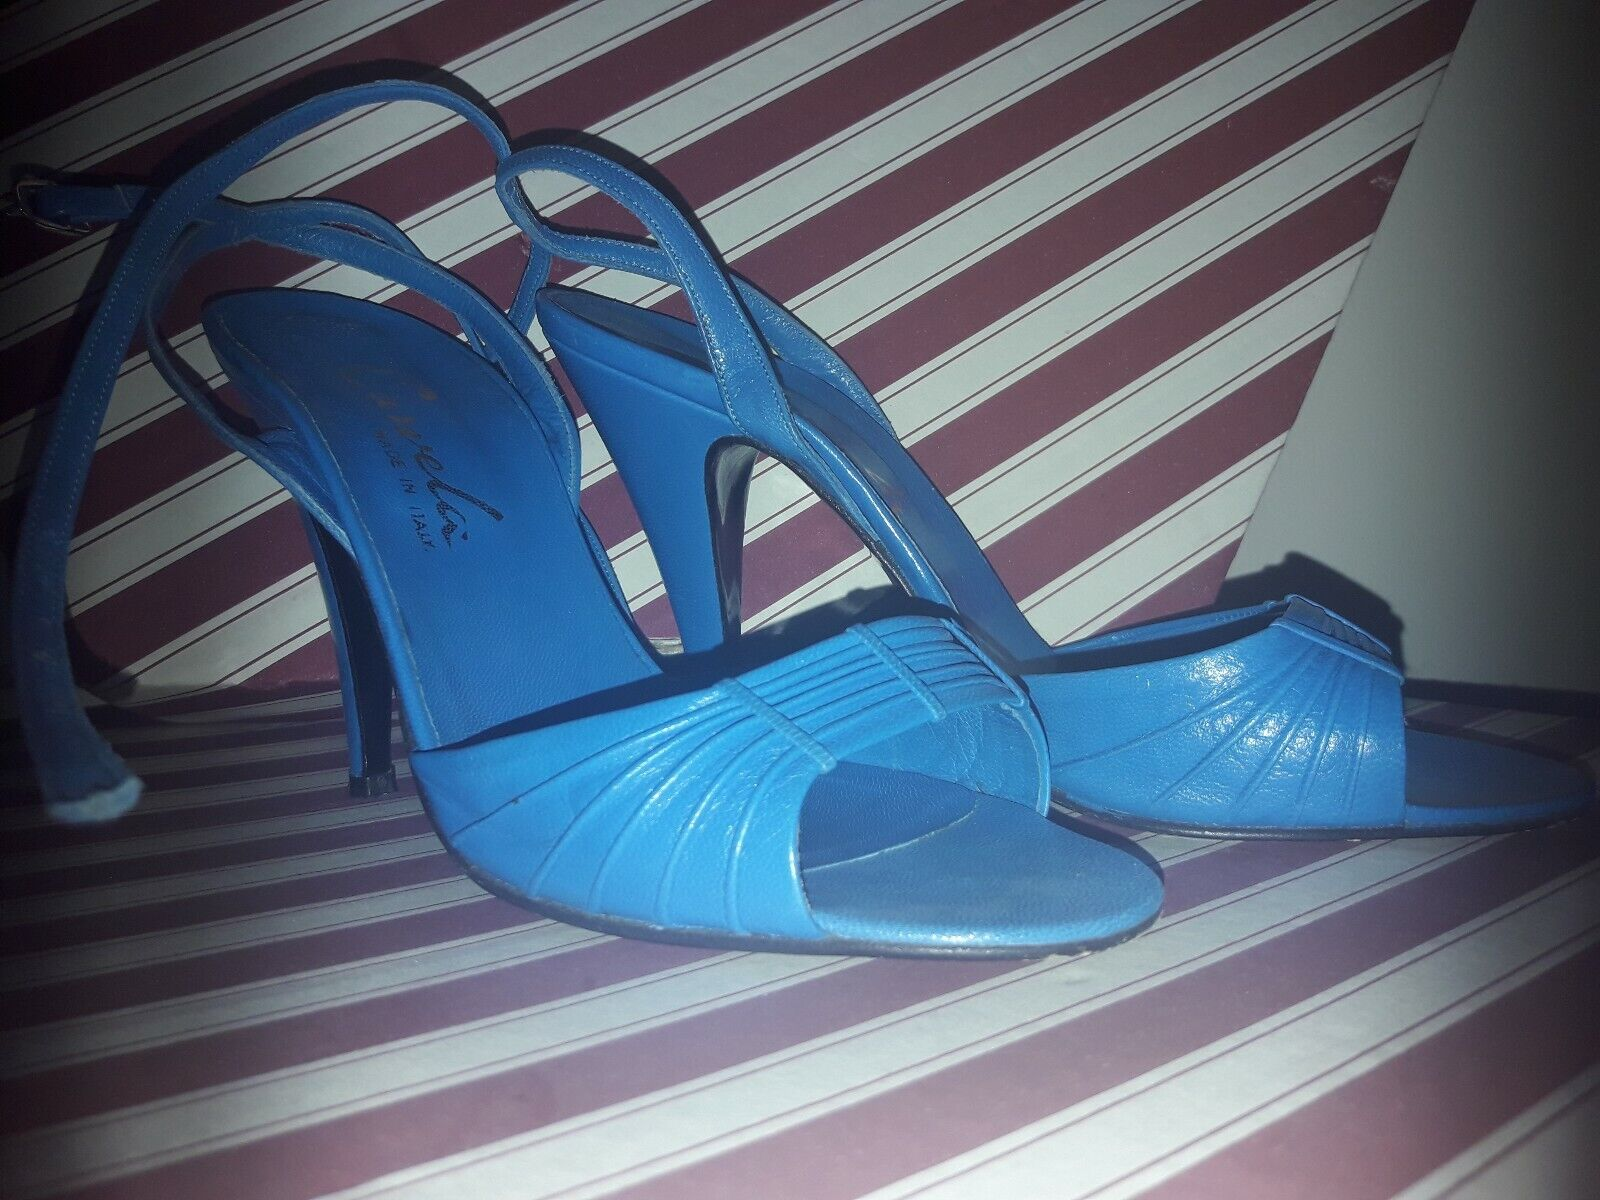 Carvela Vero Cuoio SANDALS Heels PARTY Summer  Pearla 37 Royal bluee leather